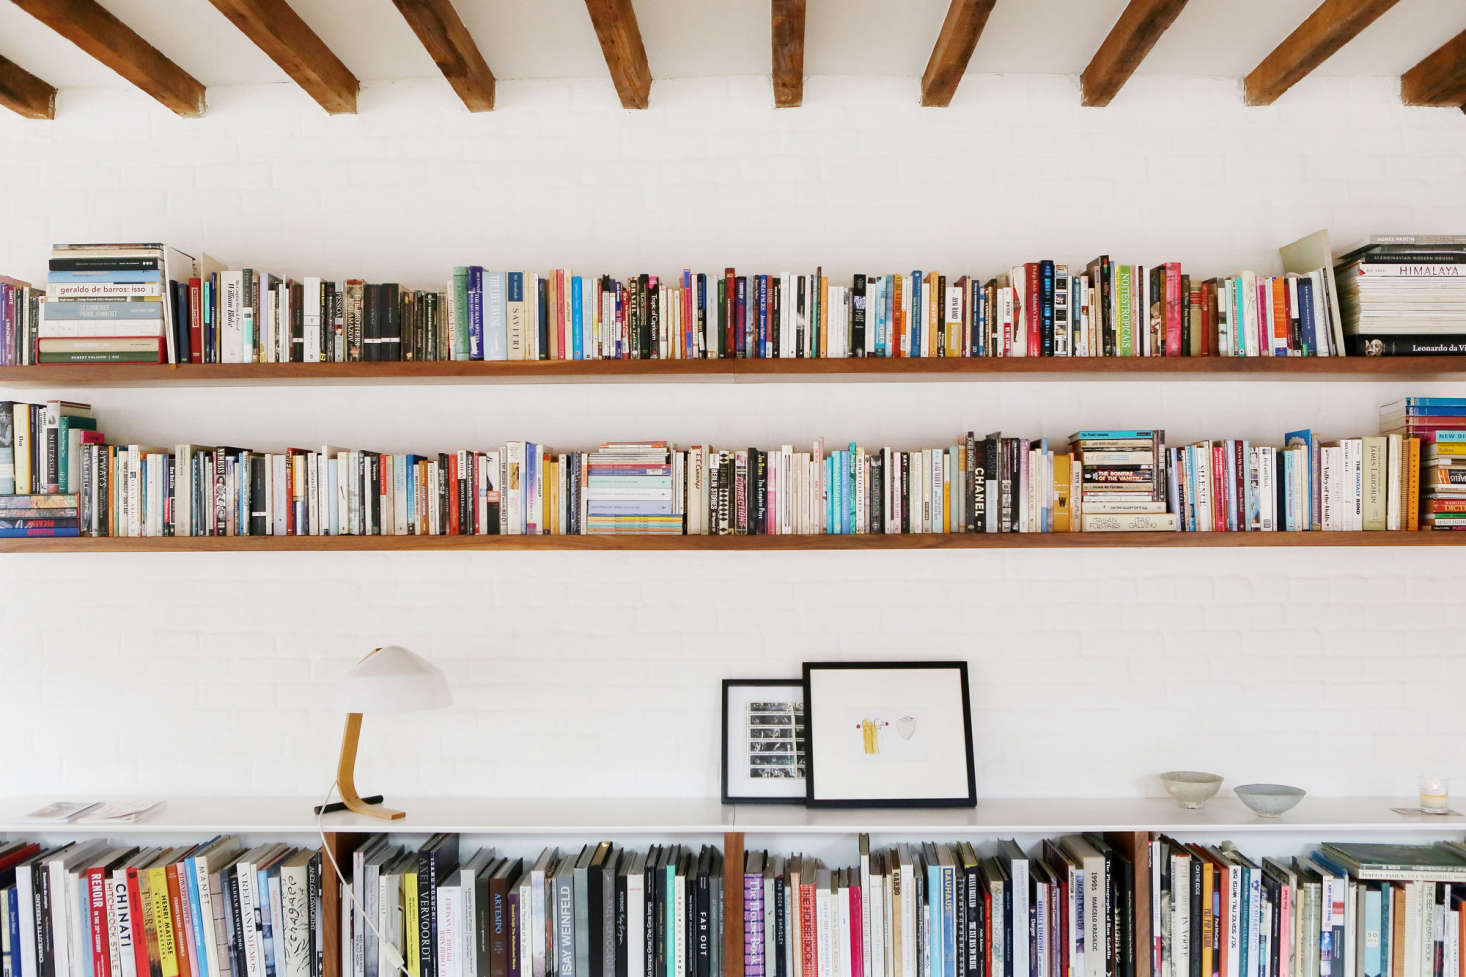 Built-in shelves replace freestanding bookshelves and create a display shelf for art and favorite objects. Long uninterrupted shelves feel expansive rather than cramped.